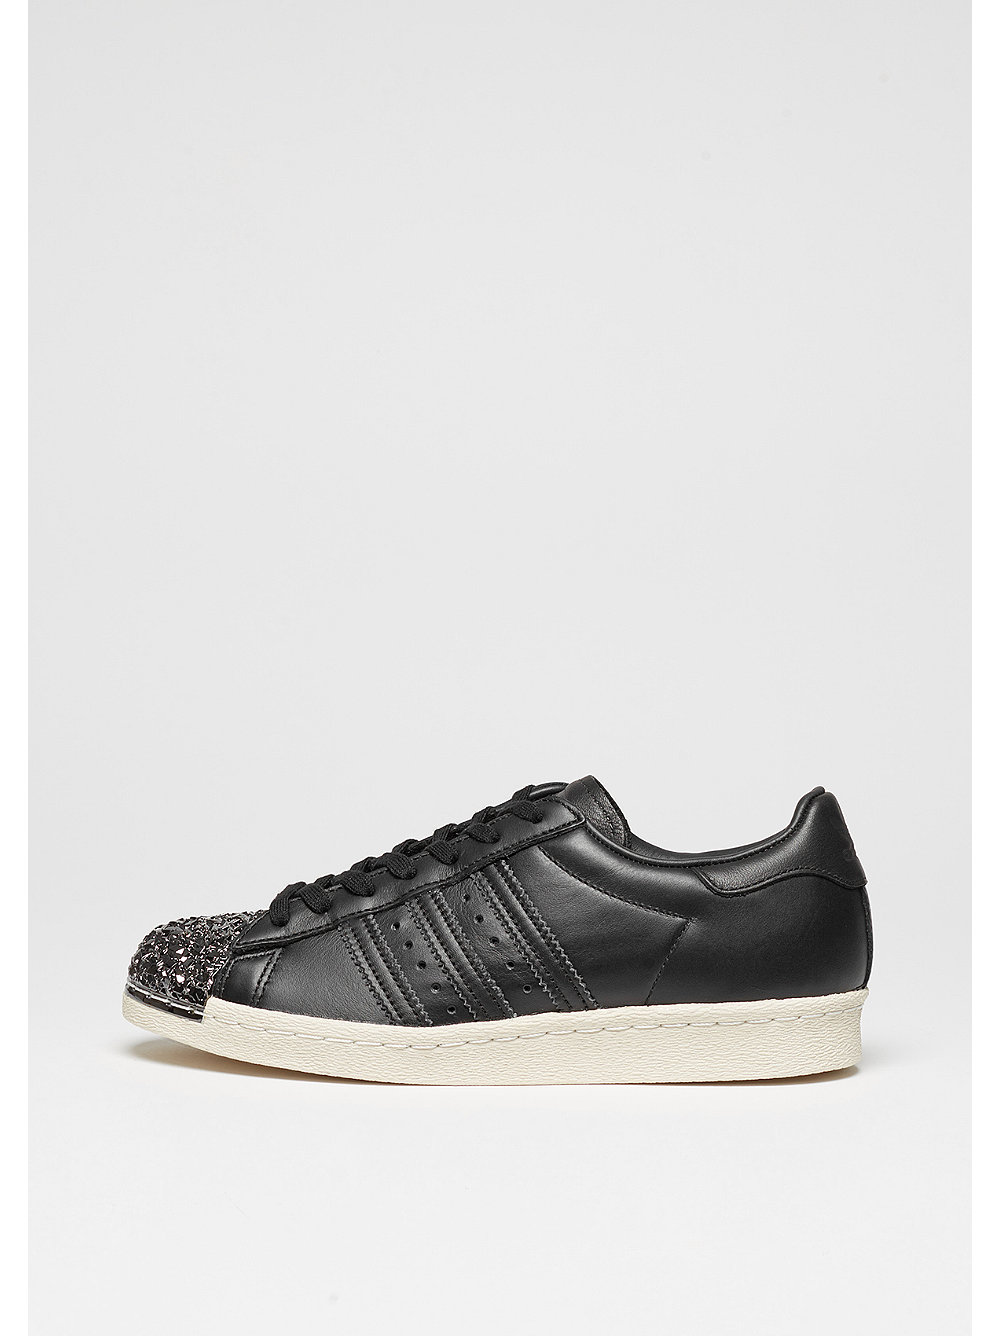 adidas Superstar 80s 3D MT core black